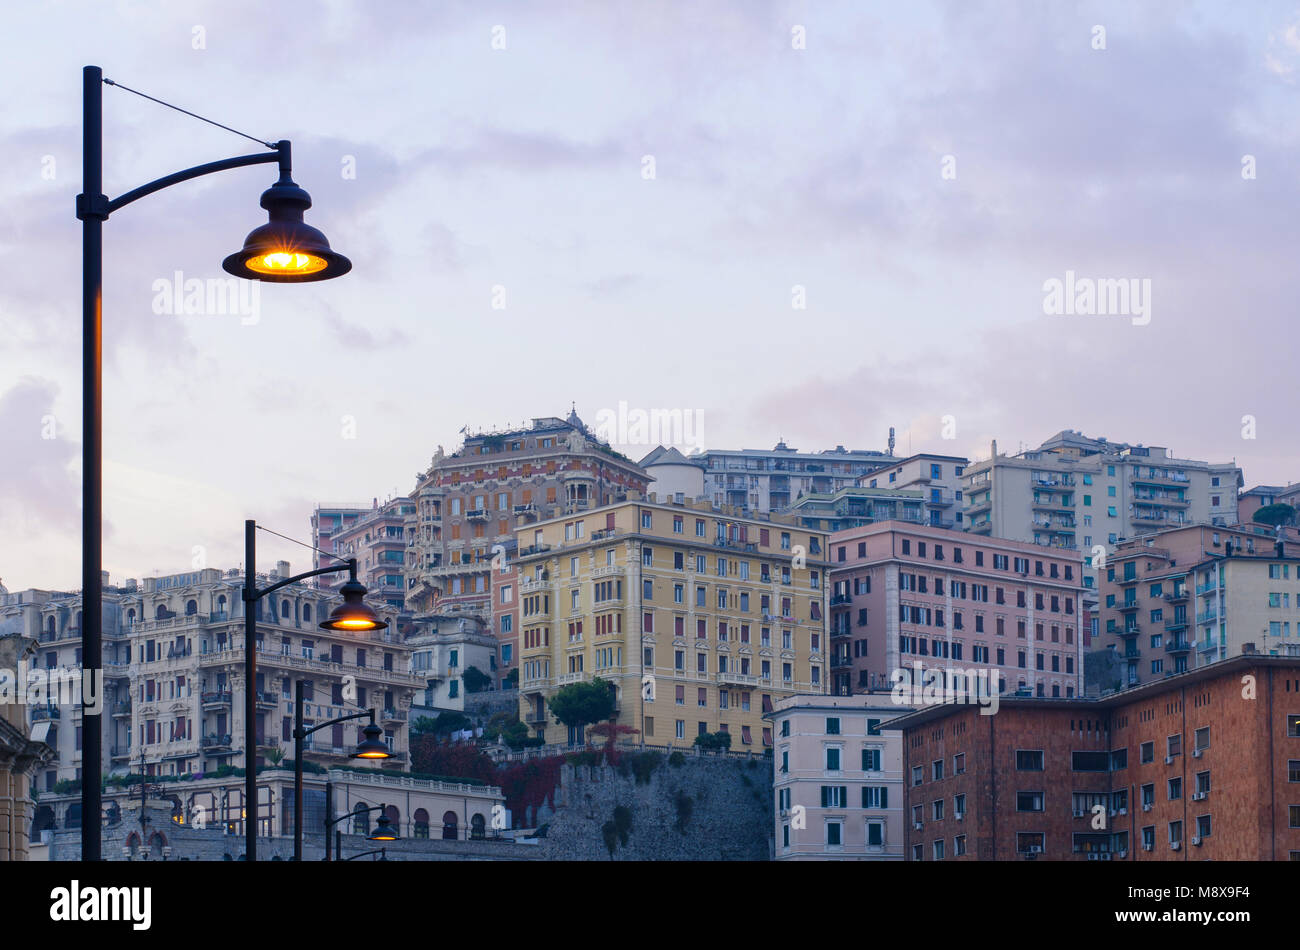 Street lamps lighting up as the evening sets in the residential district of Genoa, San Teodoro, with the architectural - Stock Image